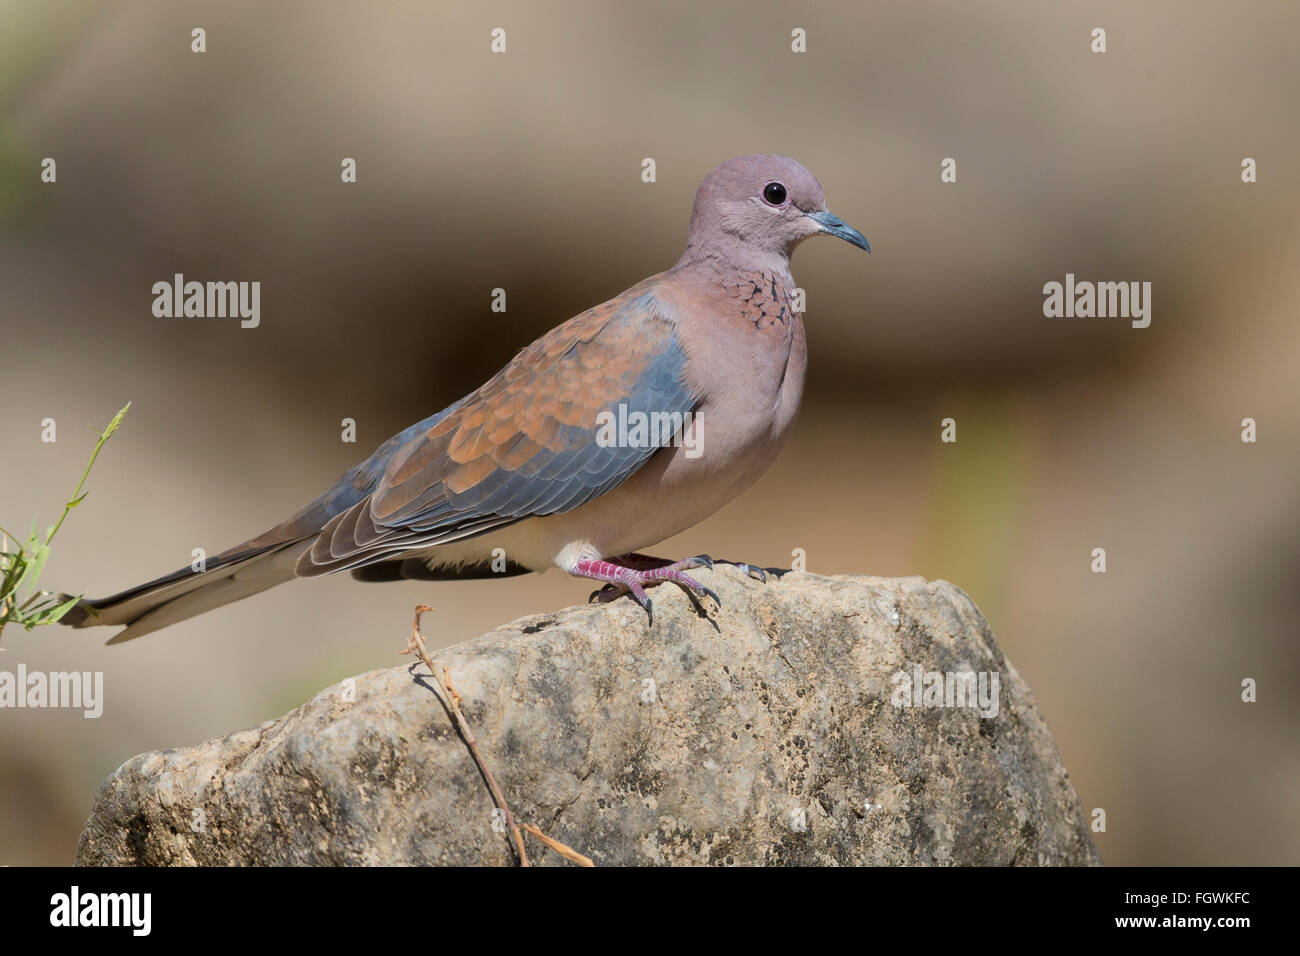 Laughing Dove (Streptopelia senegalensis), adult perched on a rock, Wadi Darbat, Dhofar, Oman Stock Photo